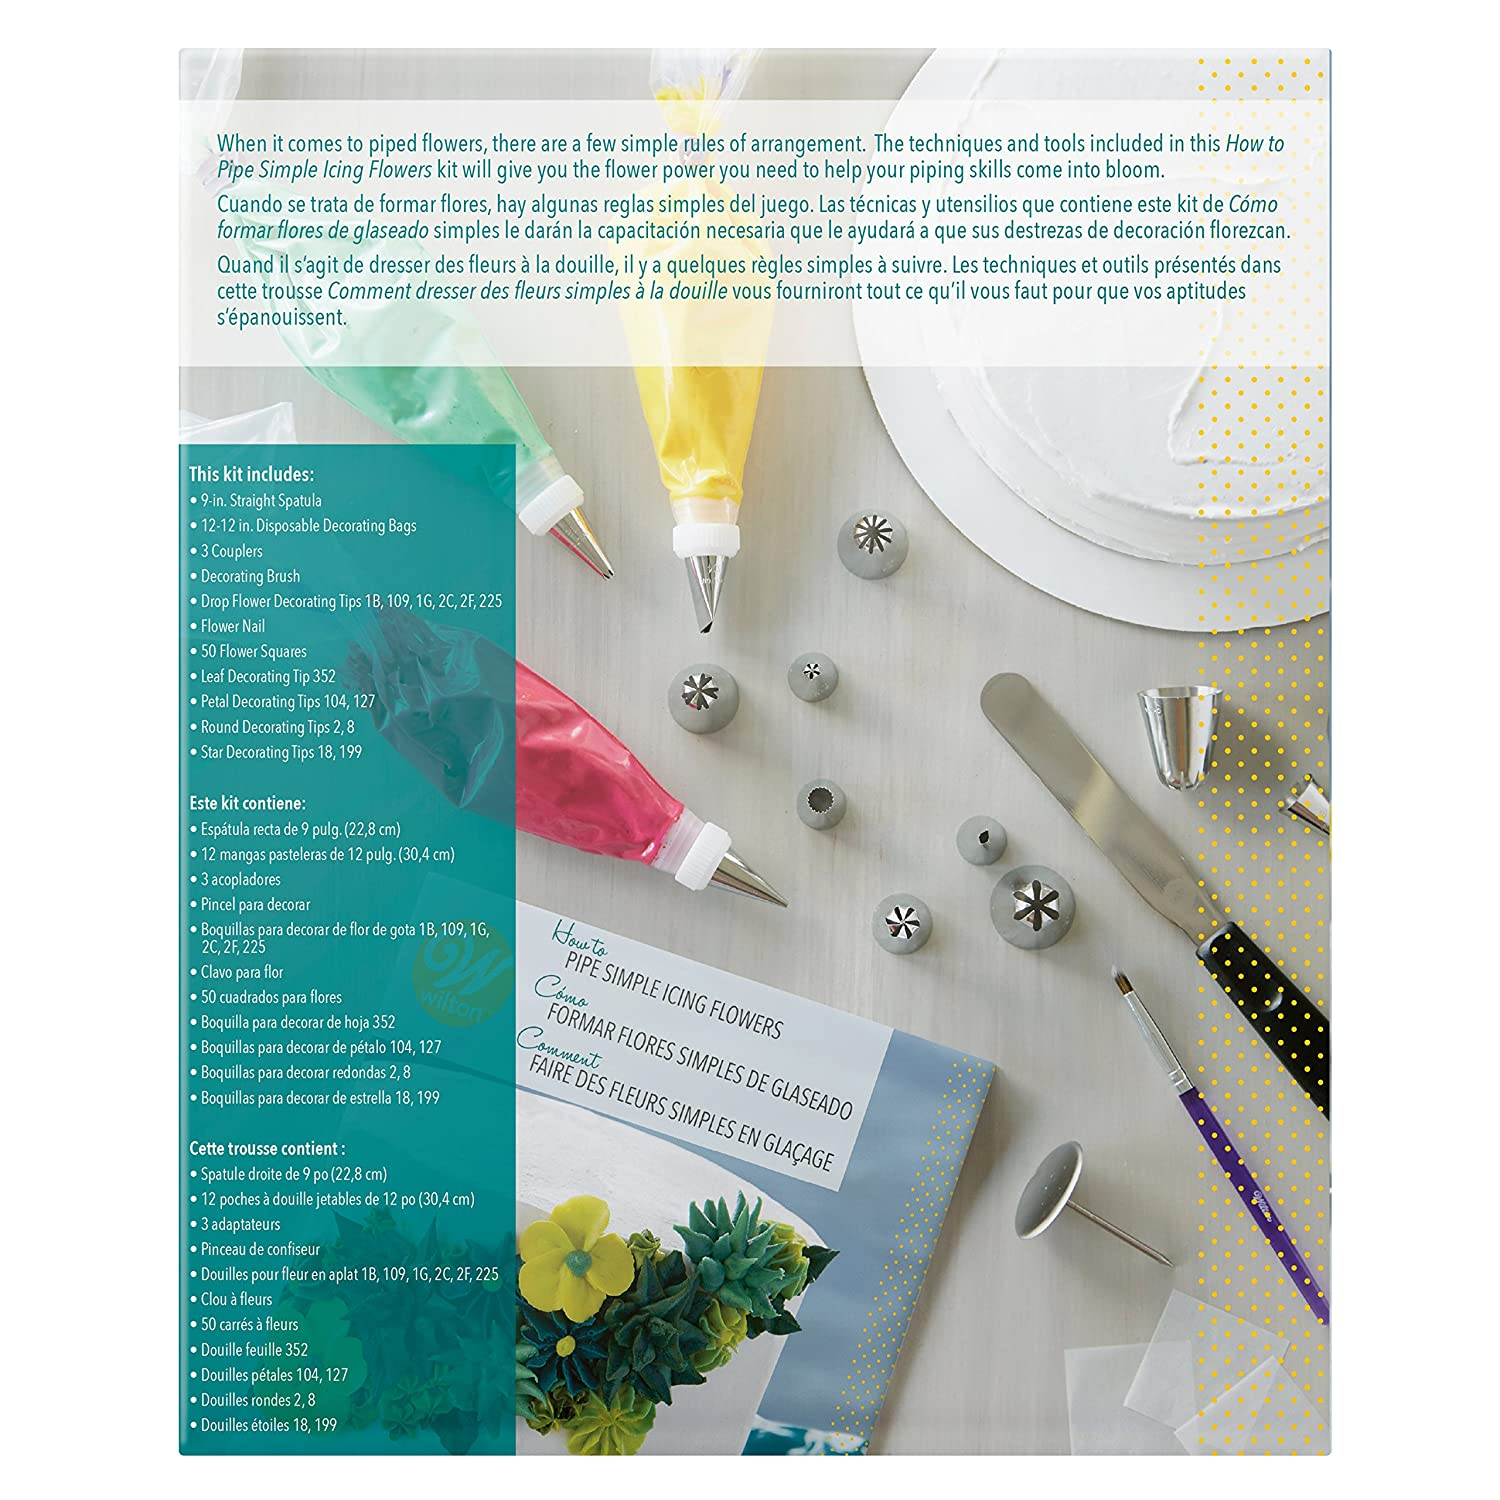 Amazon.com: Wilton How to Pipe Simple Icing Flowers Kit -68-Piece ...